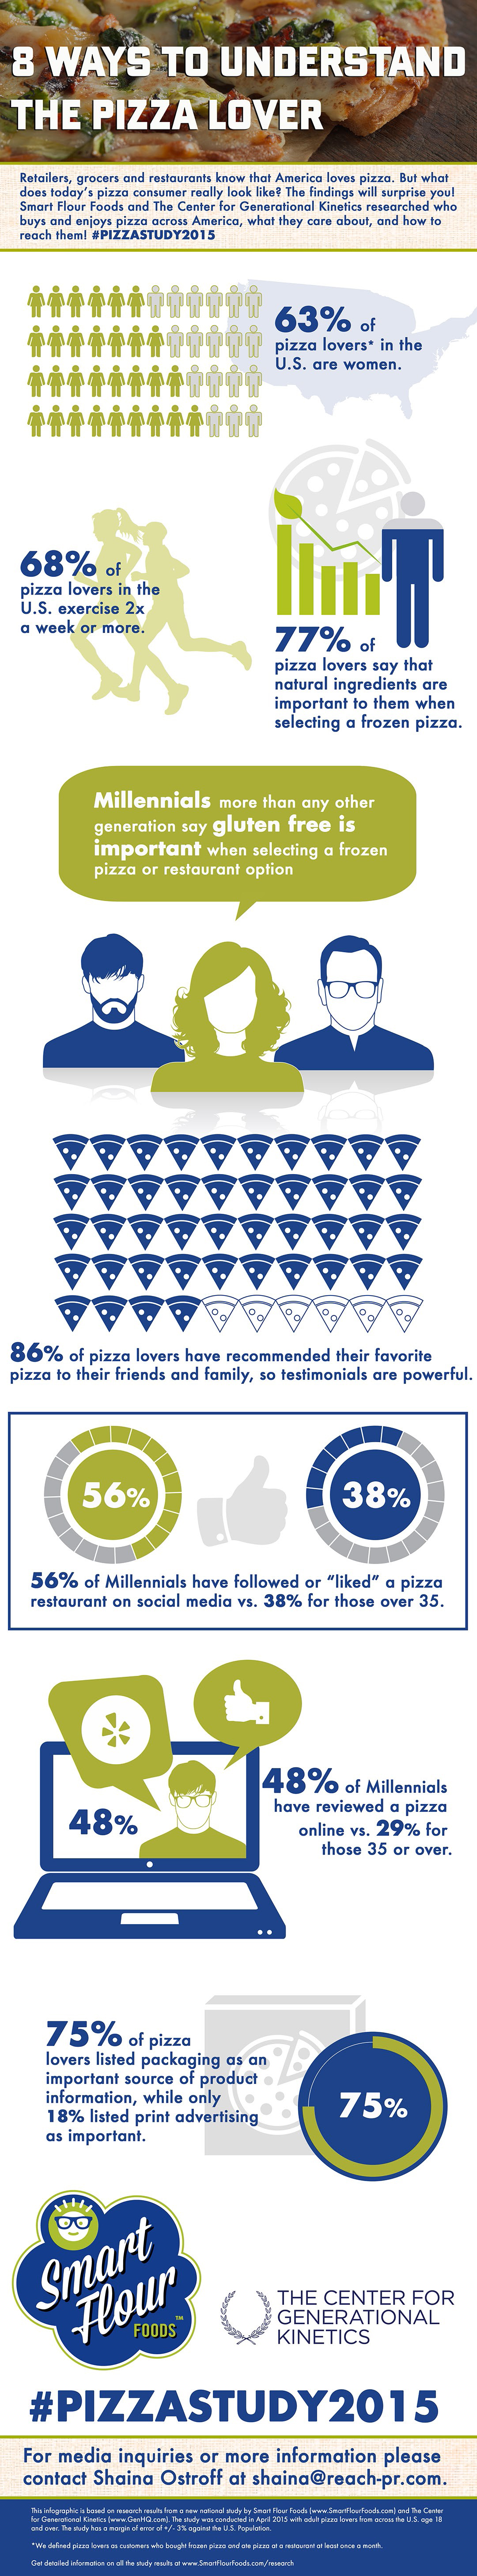 """""""Pizza Lovers in America 2015: Unexpected Findings From a Generational Look At Pizza"""" Infographic (Graphic: Business Wire)"""